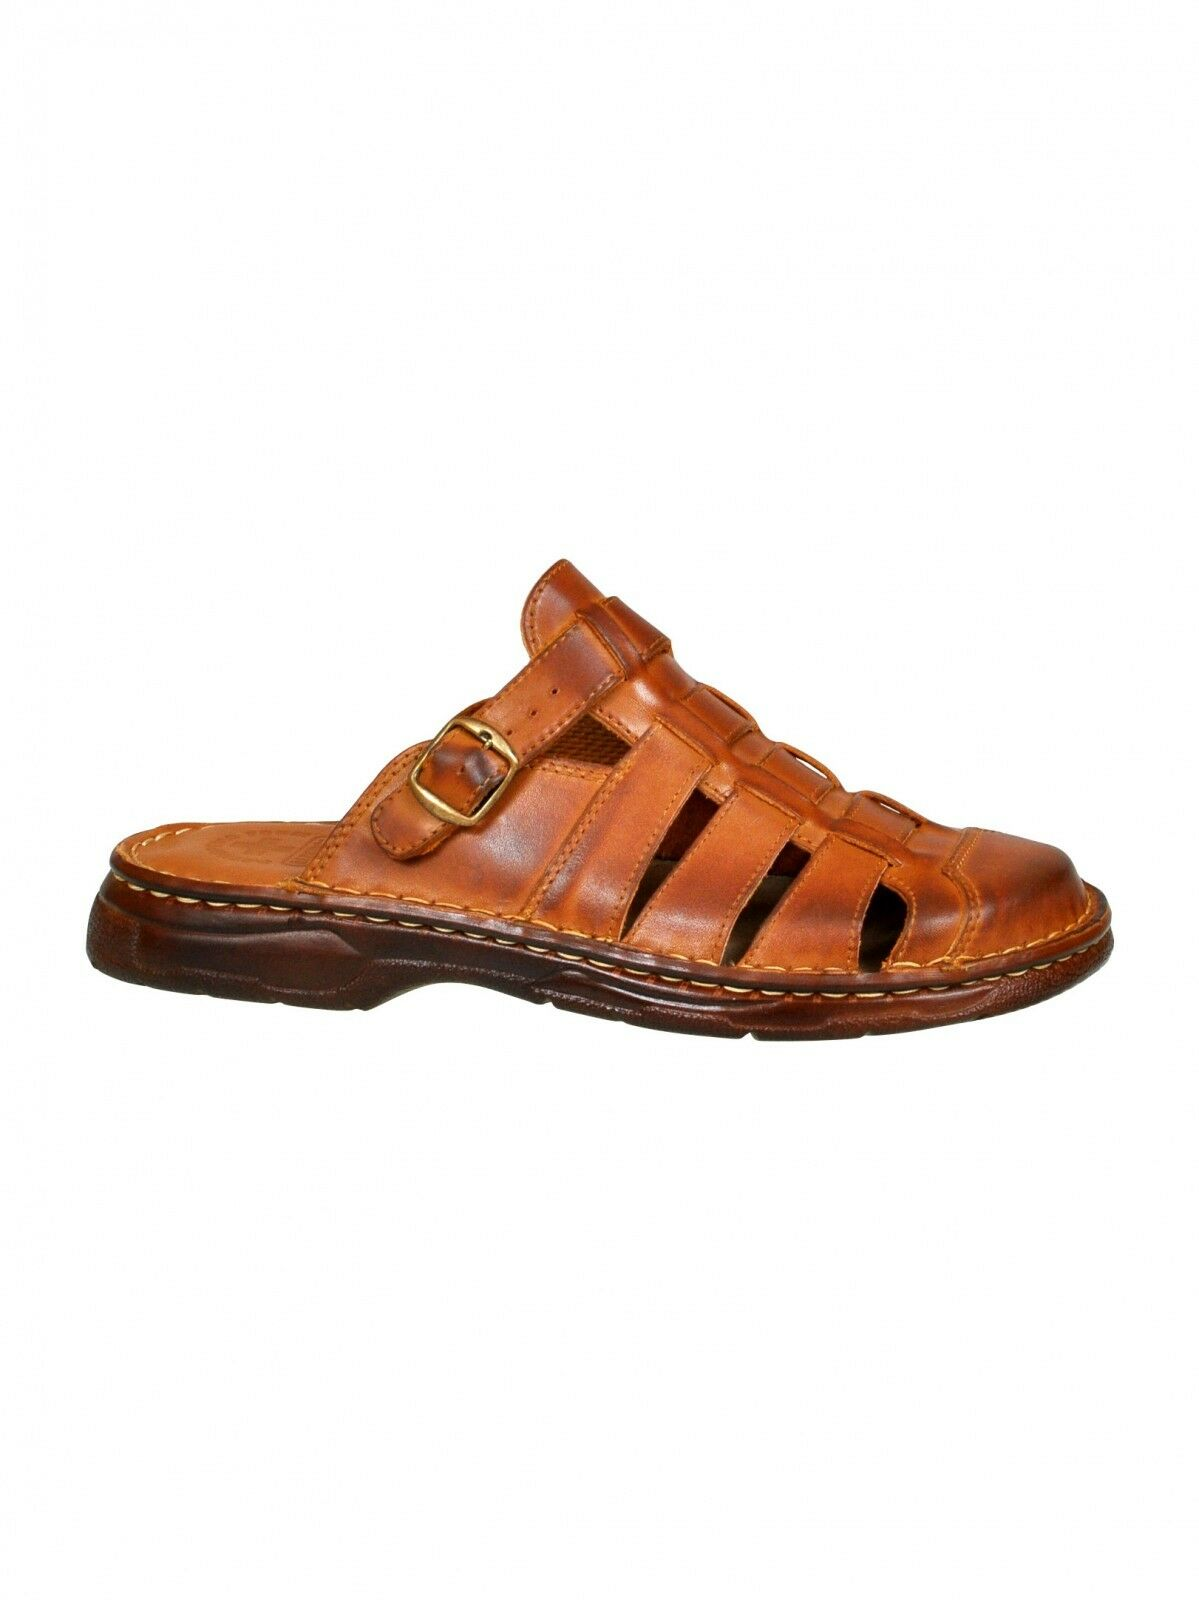 Men Sandals Slip On Shoes Orthopedic Form Comfortable Buffalo Leather UK Sz 7-11